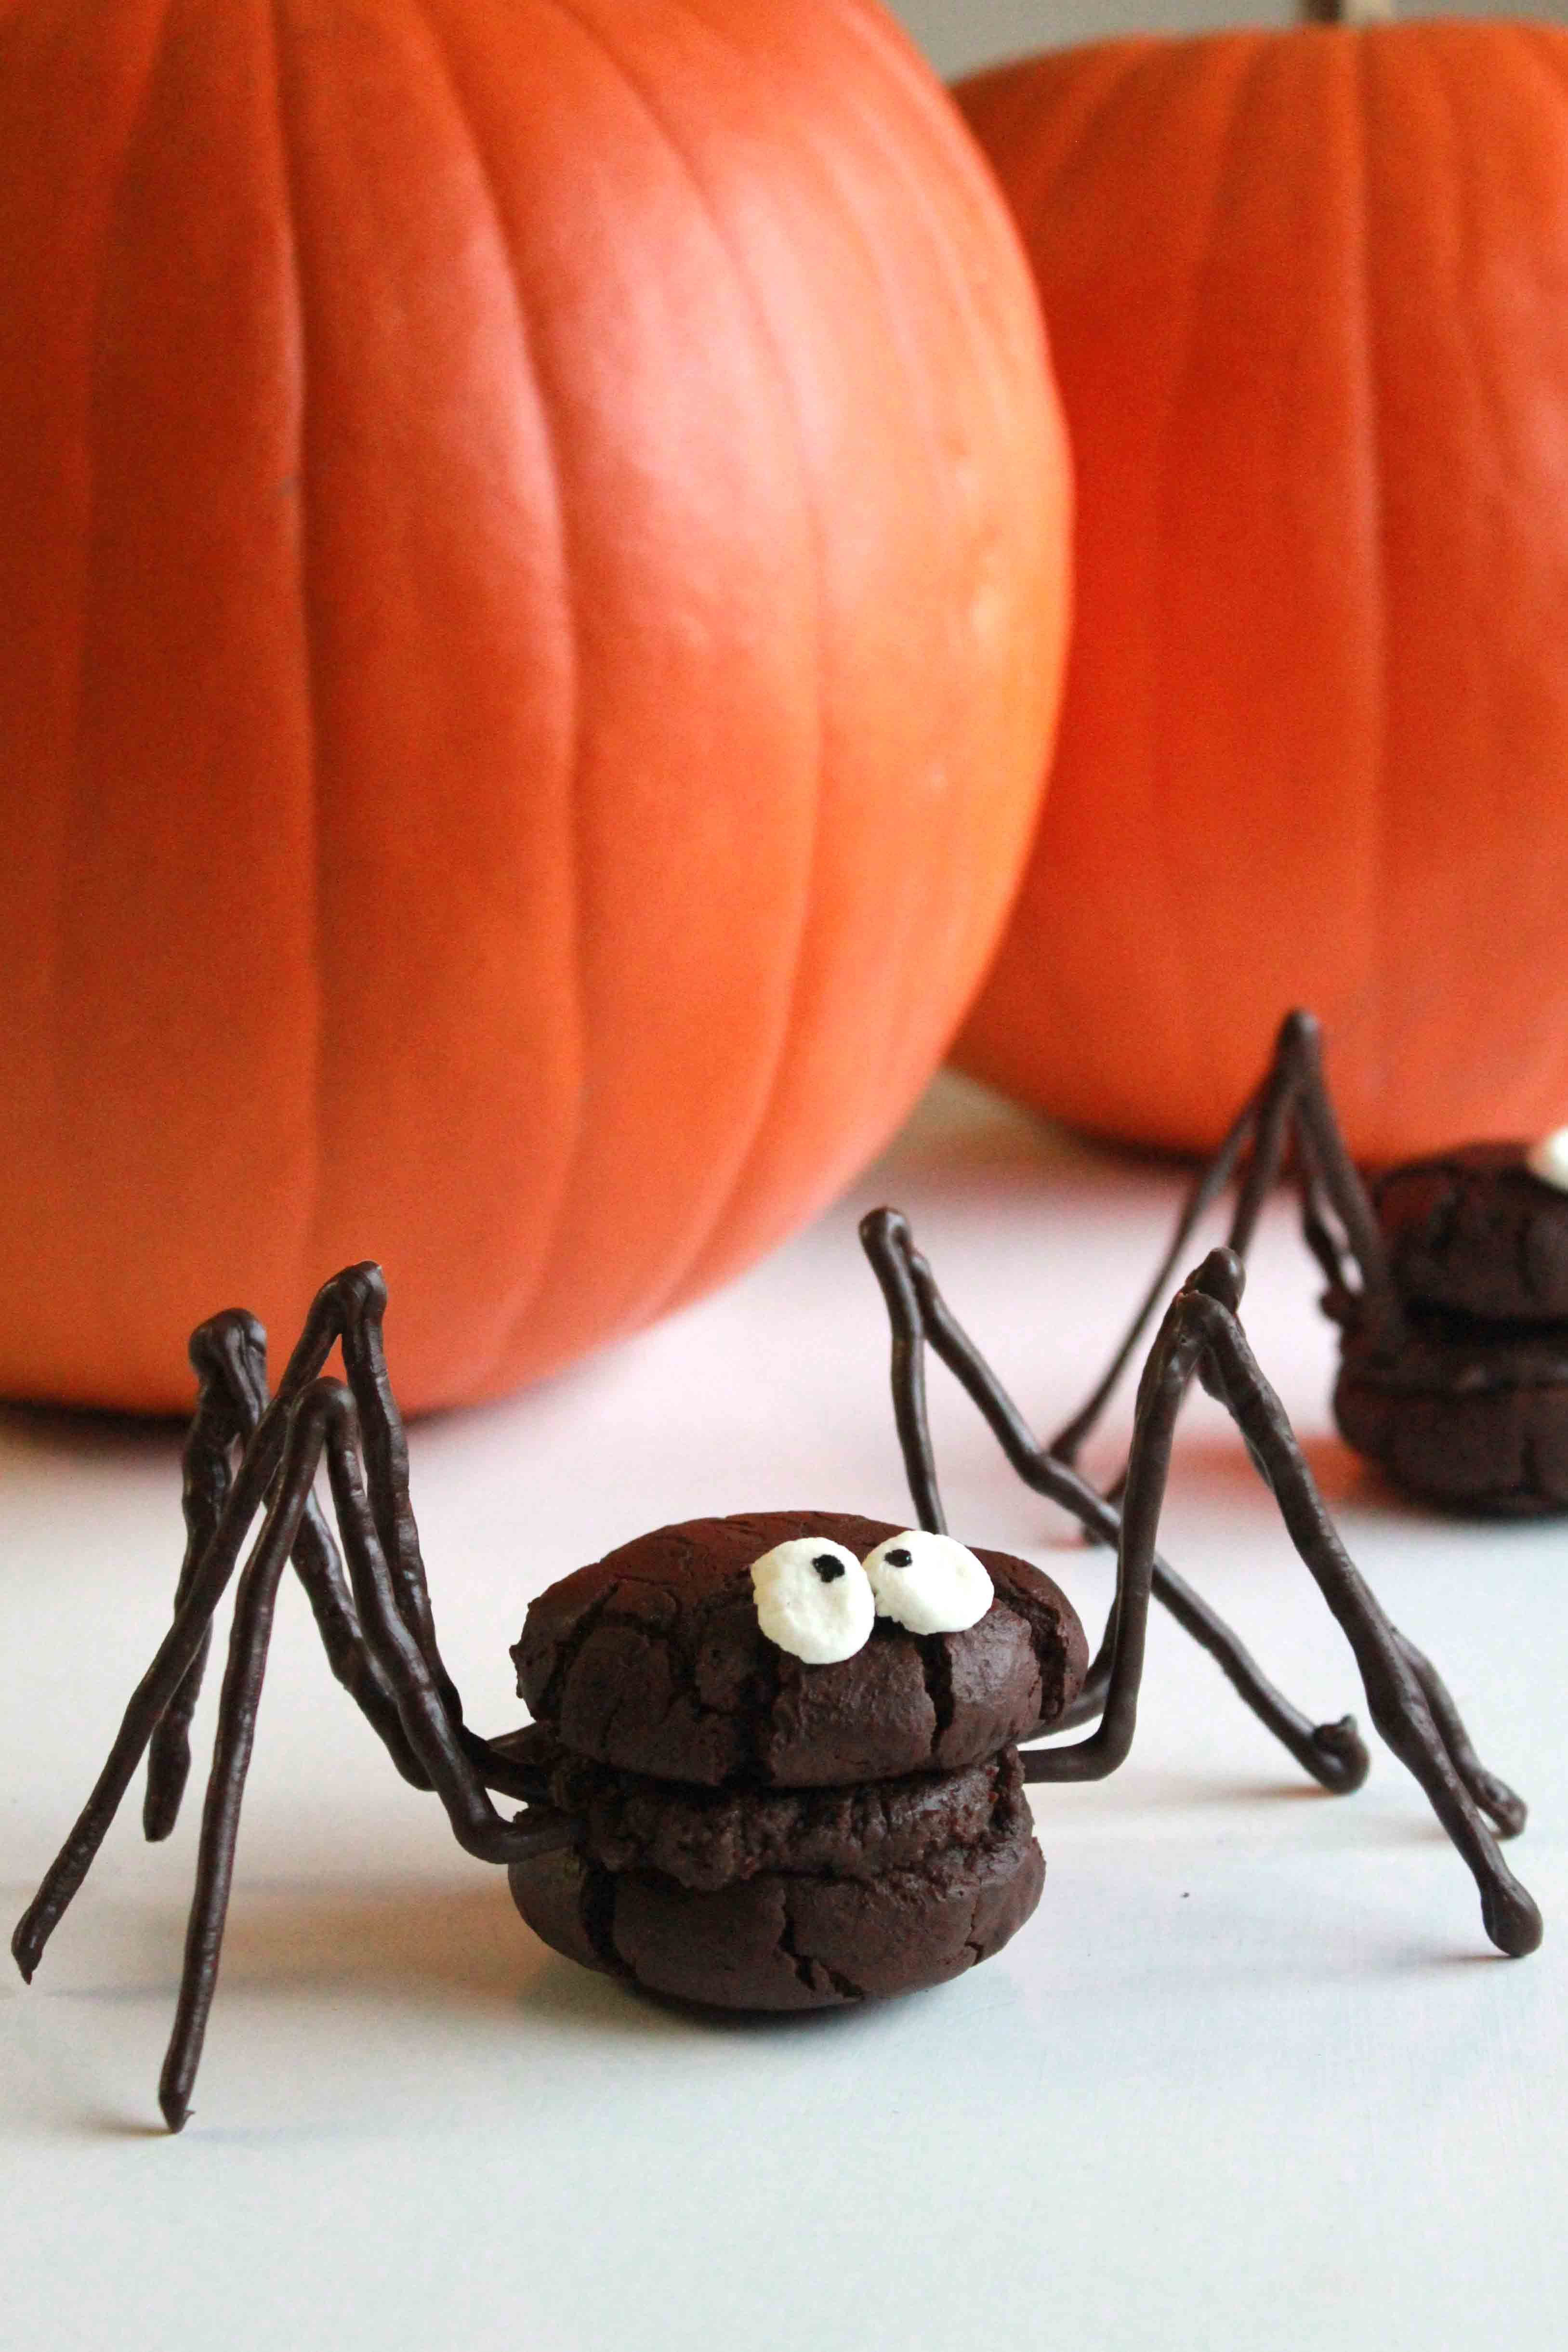 Spider Whoopie Pie~ Some younger children may love the looks of these whoopie pies while others might be quite scared